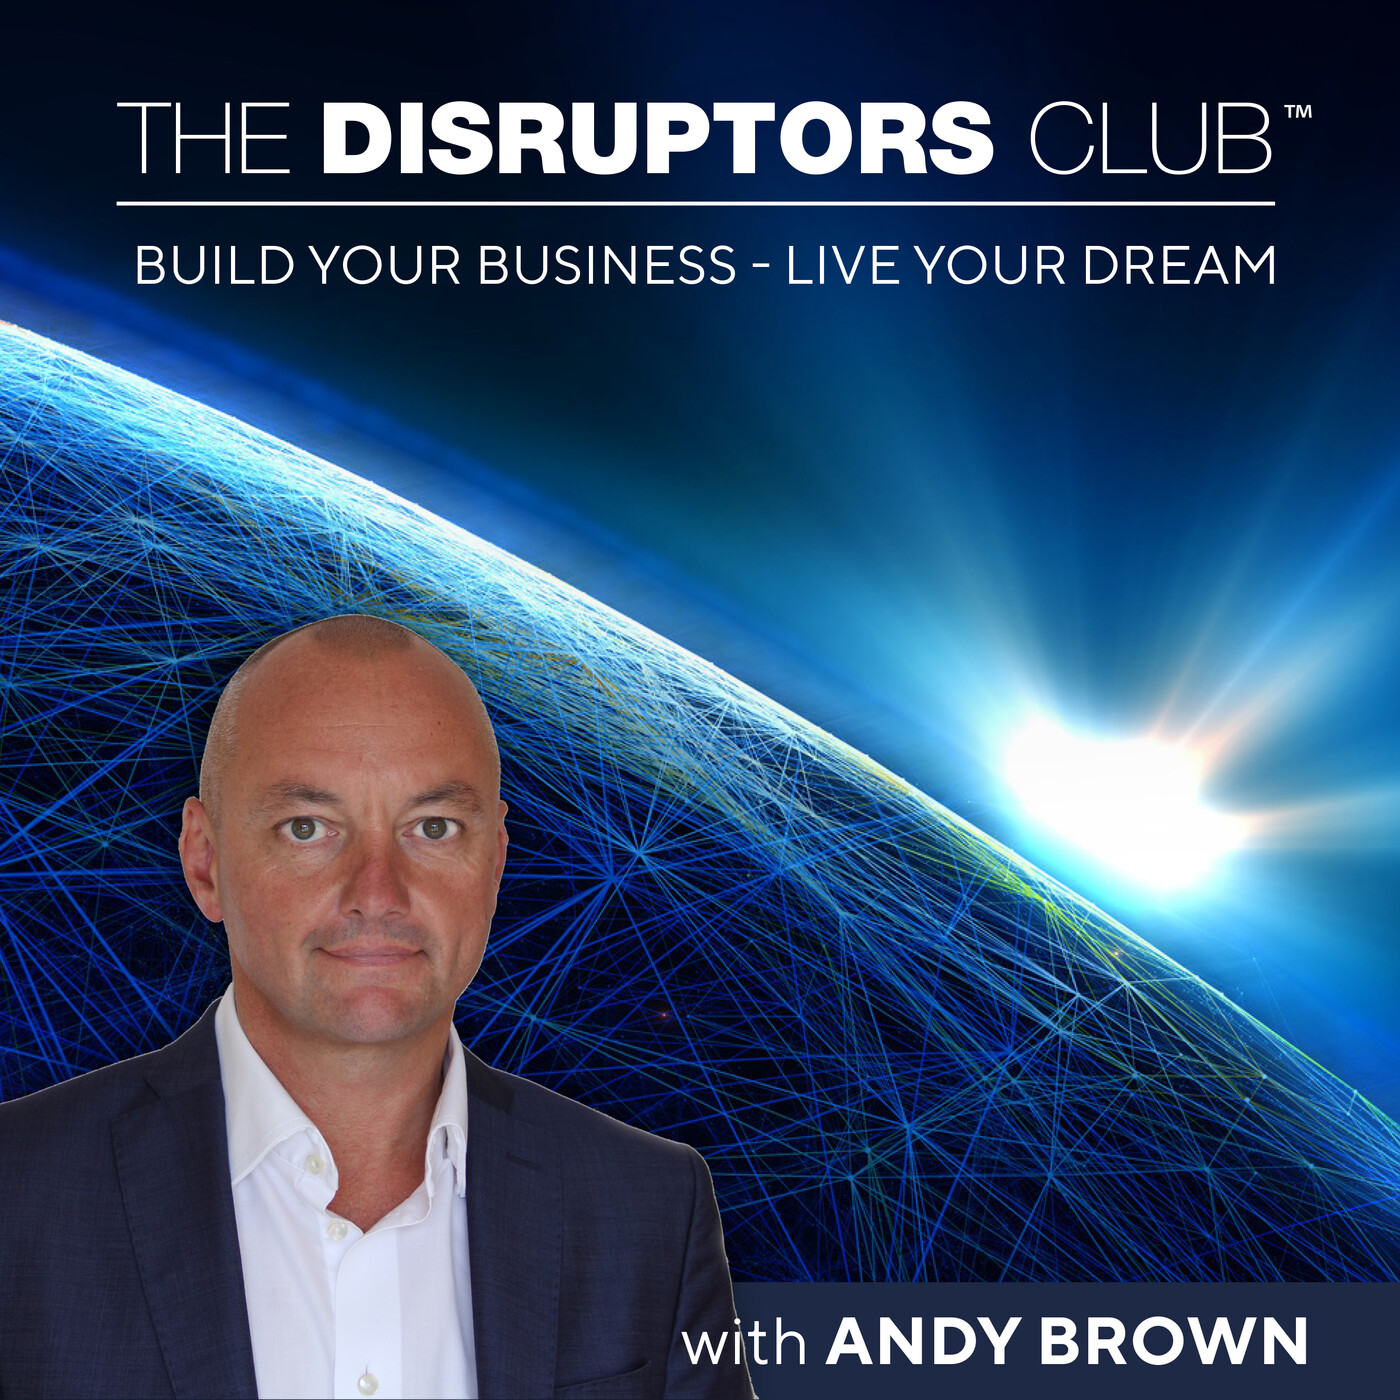 Andy Brown - Founder of The Di